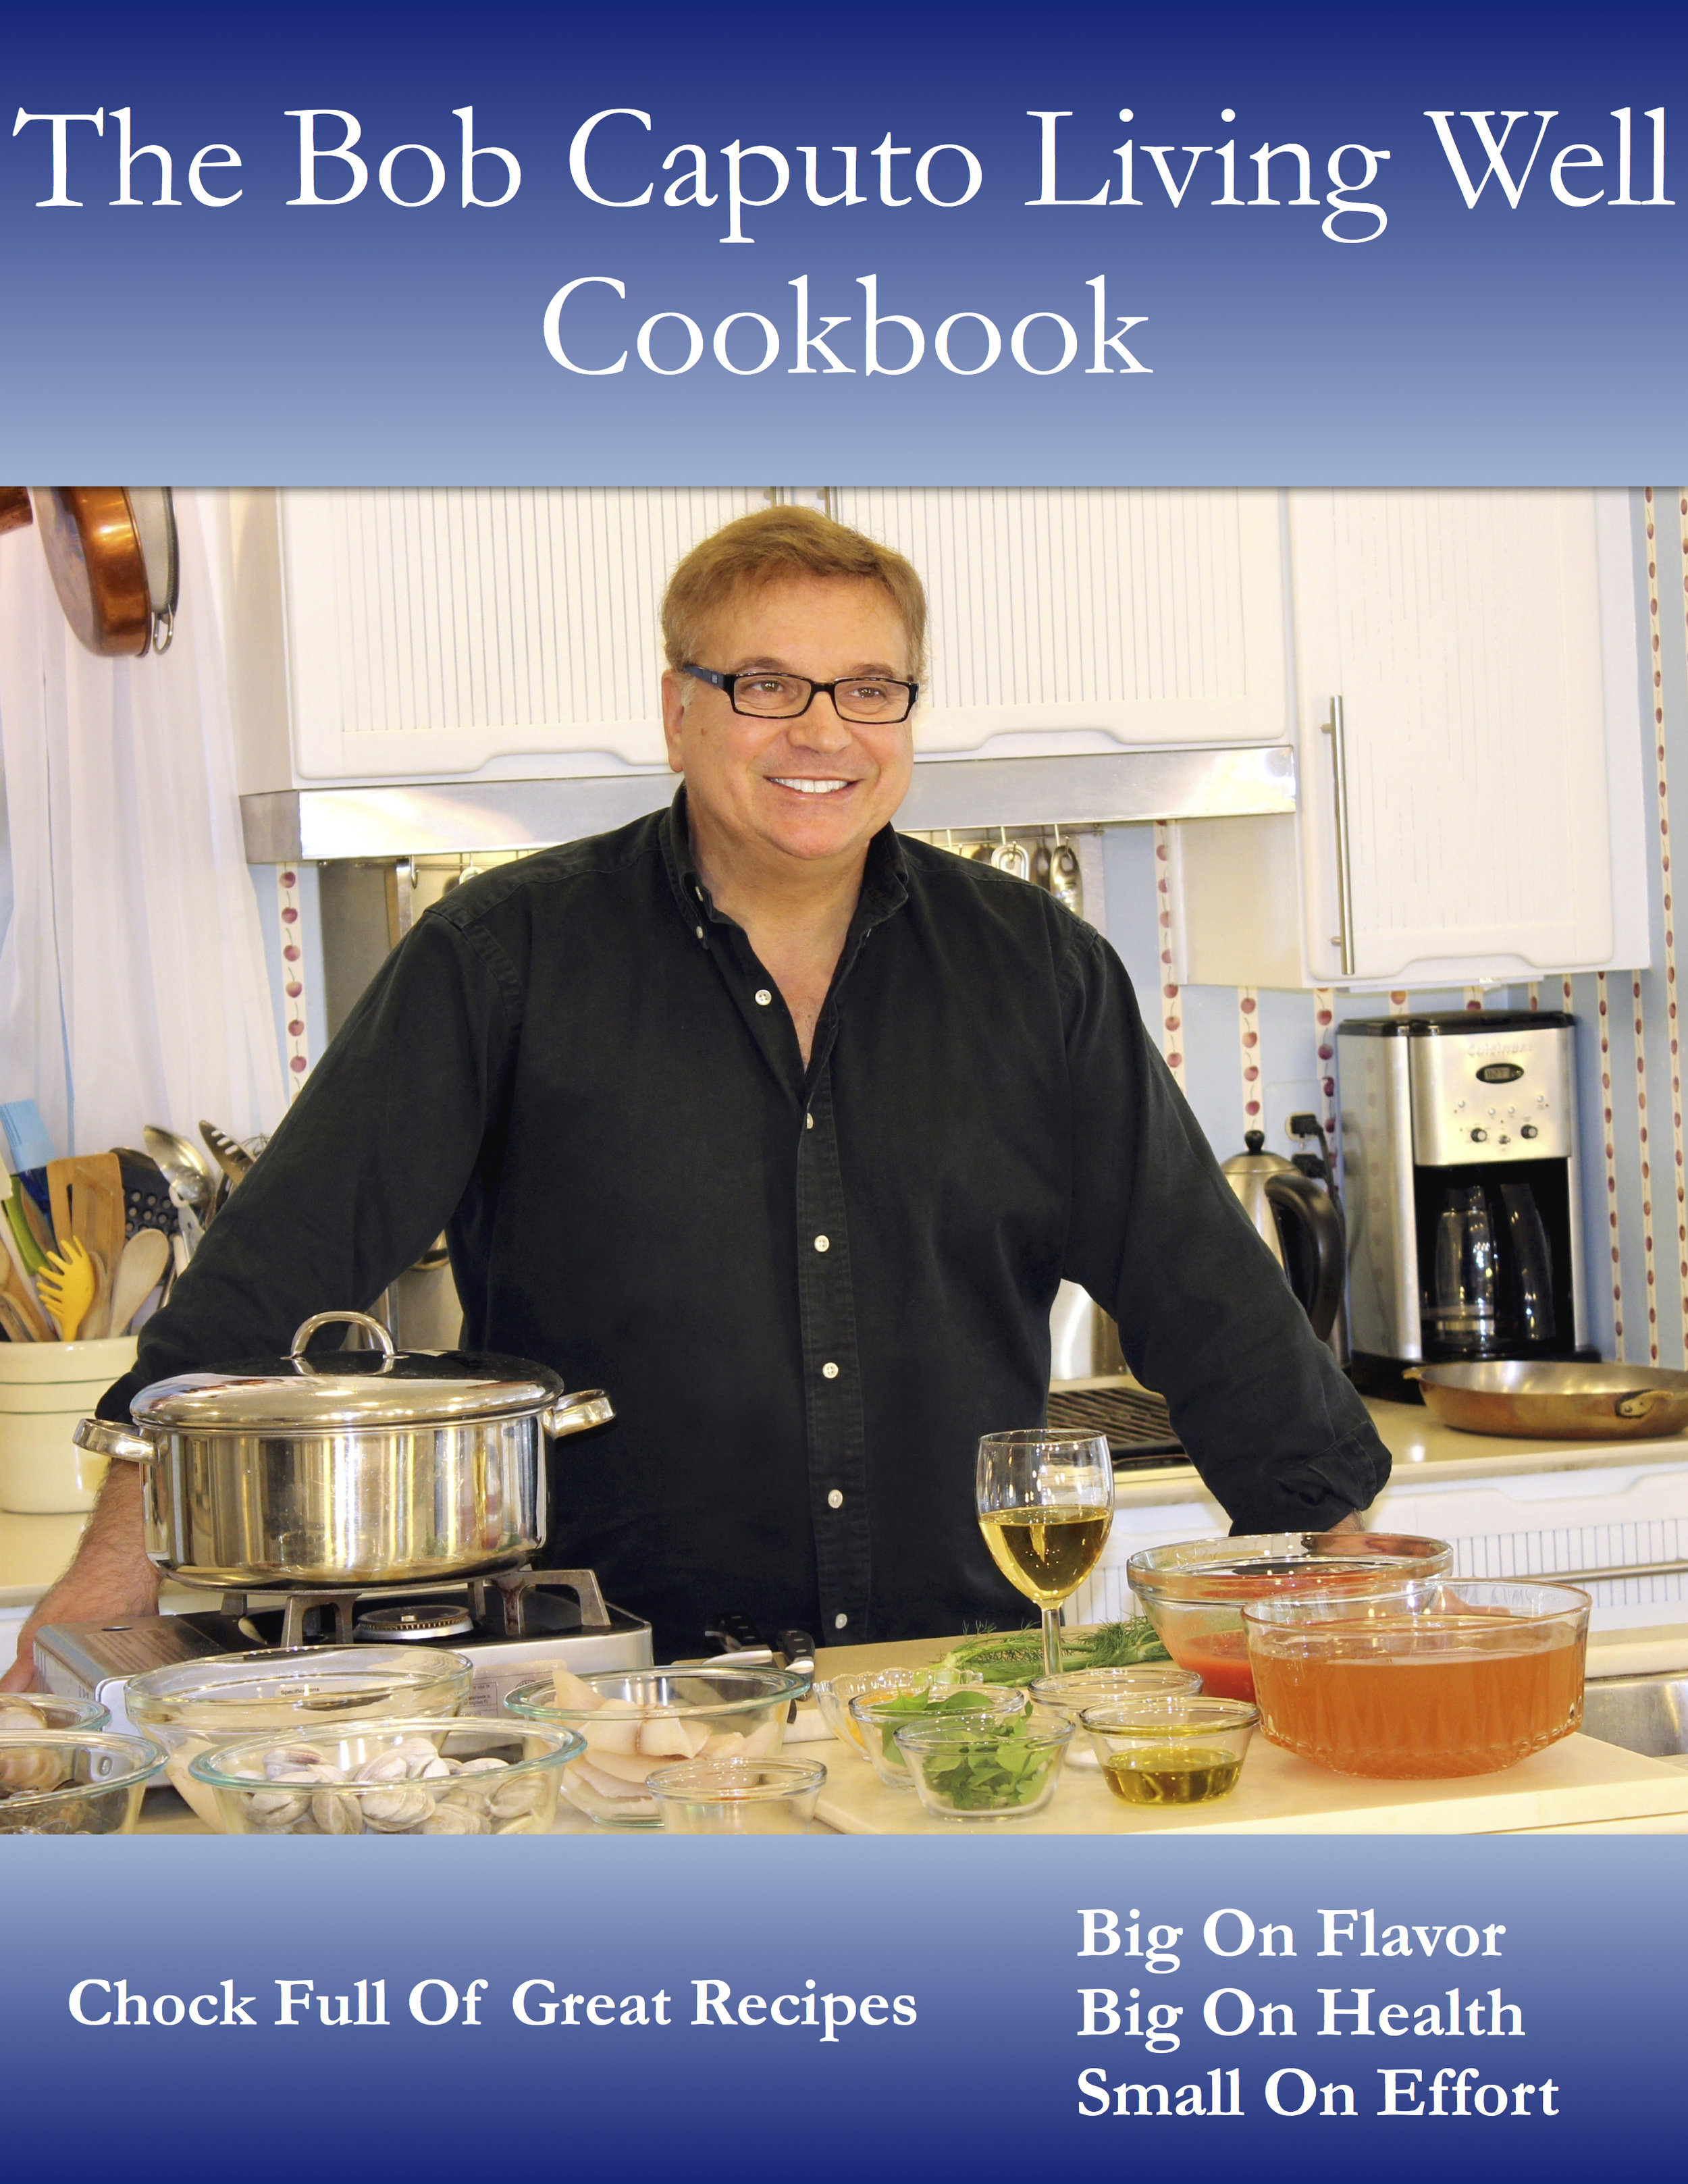 The Bob Caputo Living Well Cookbook is now available for purchase on Amazon!